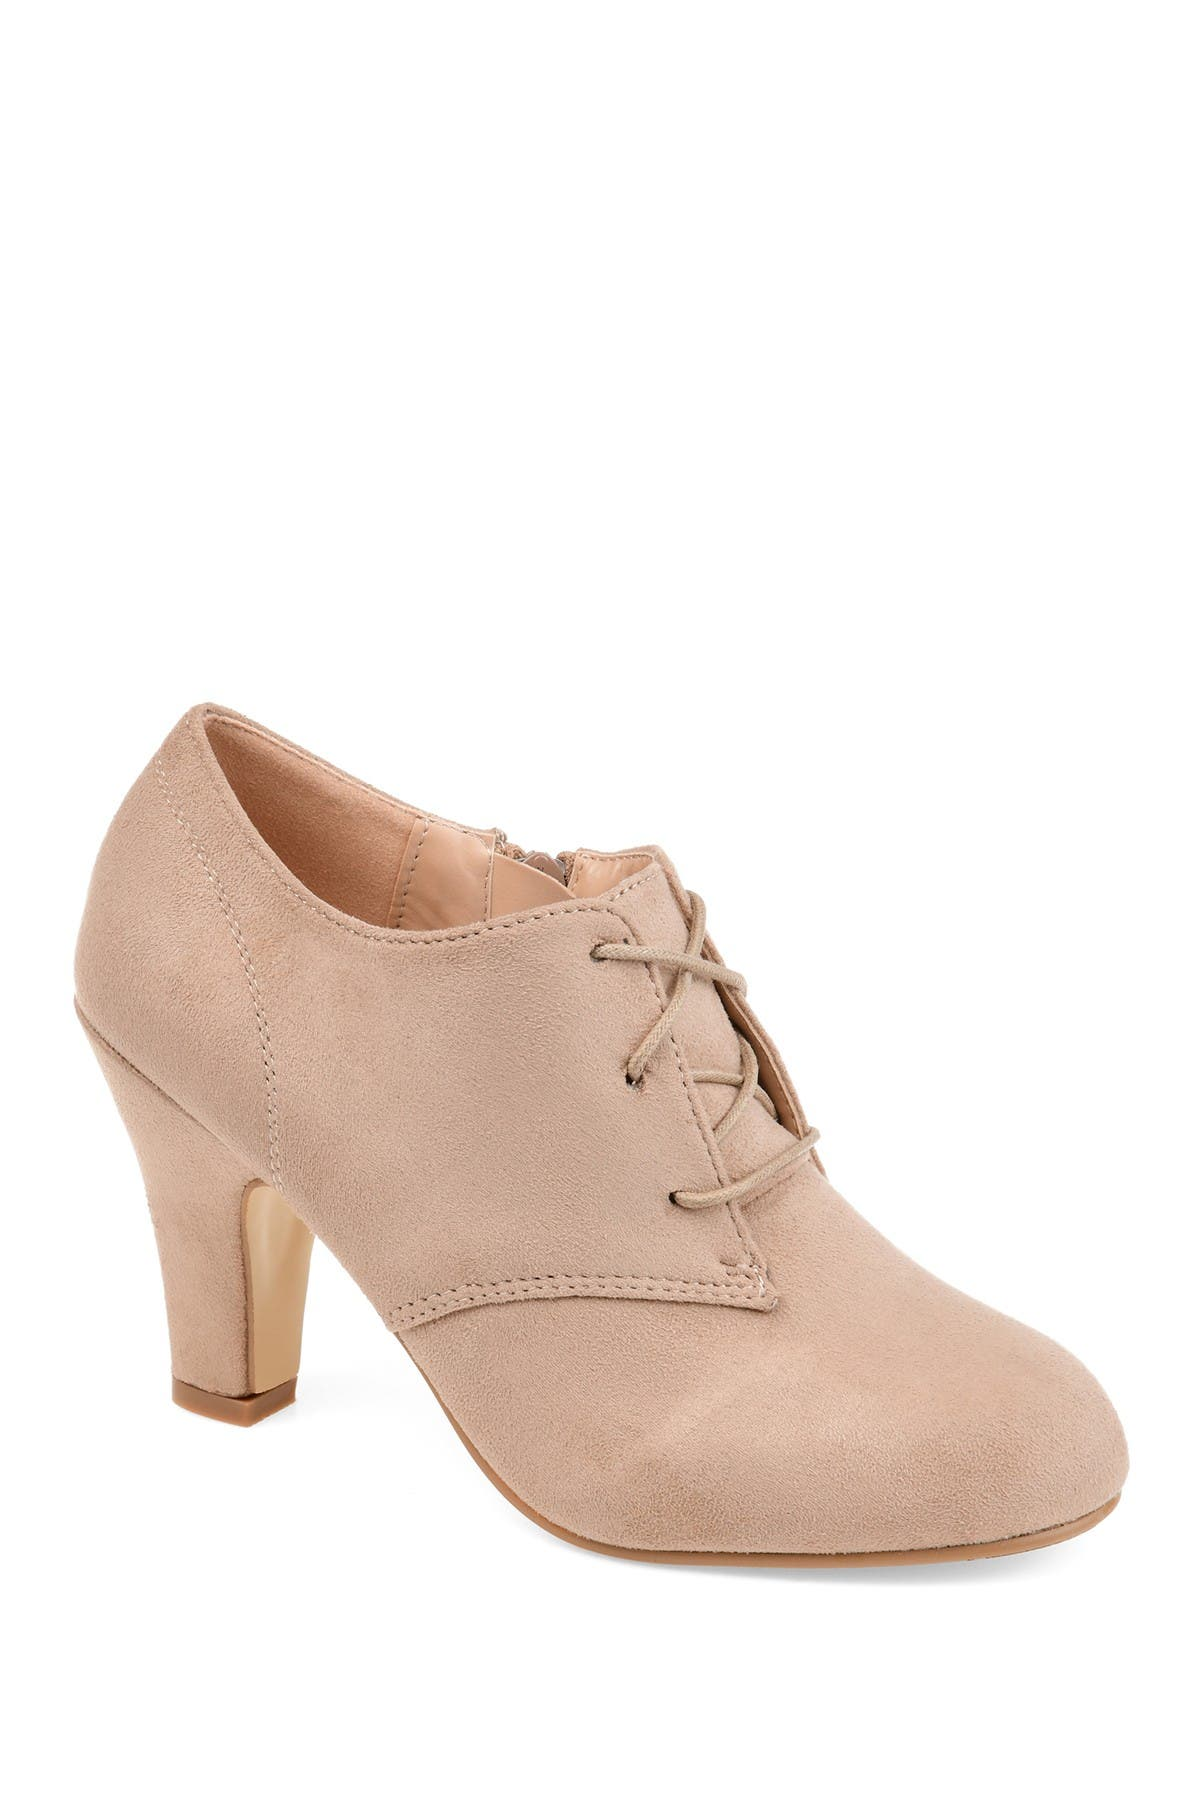 Image of JOURNEE Collection Leona Lace-Up Bootie